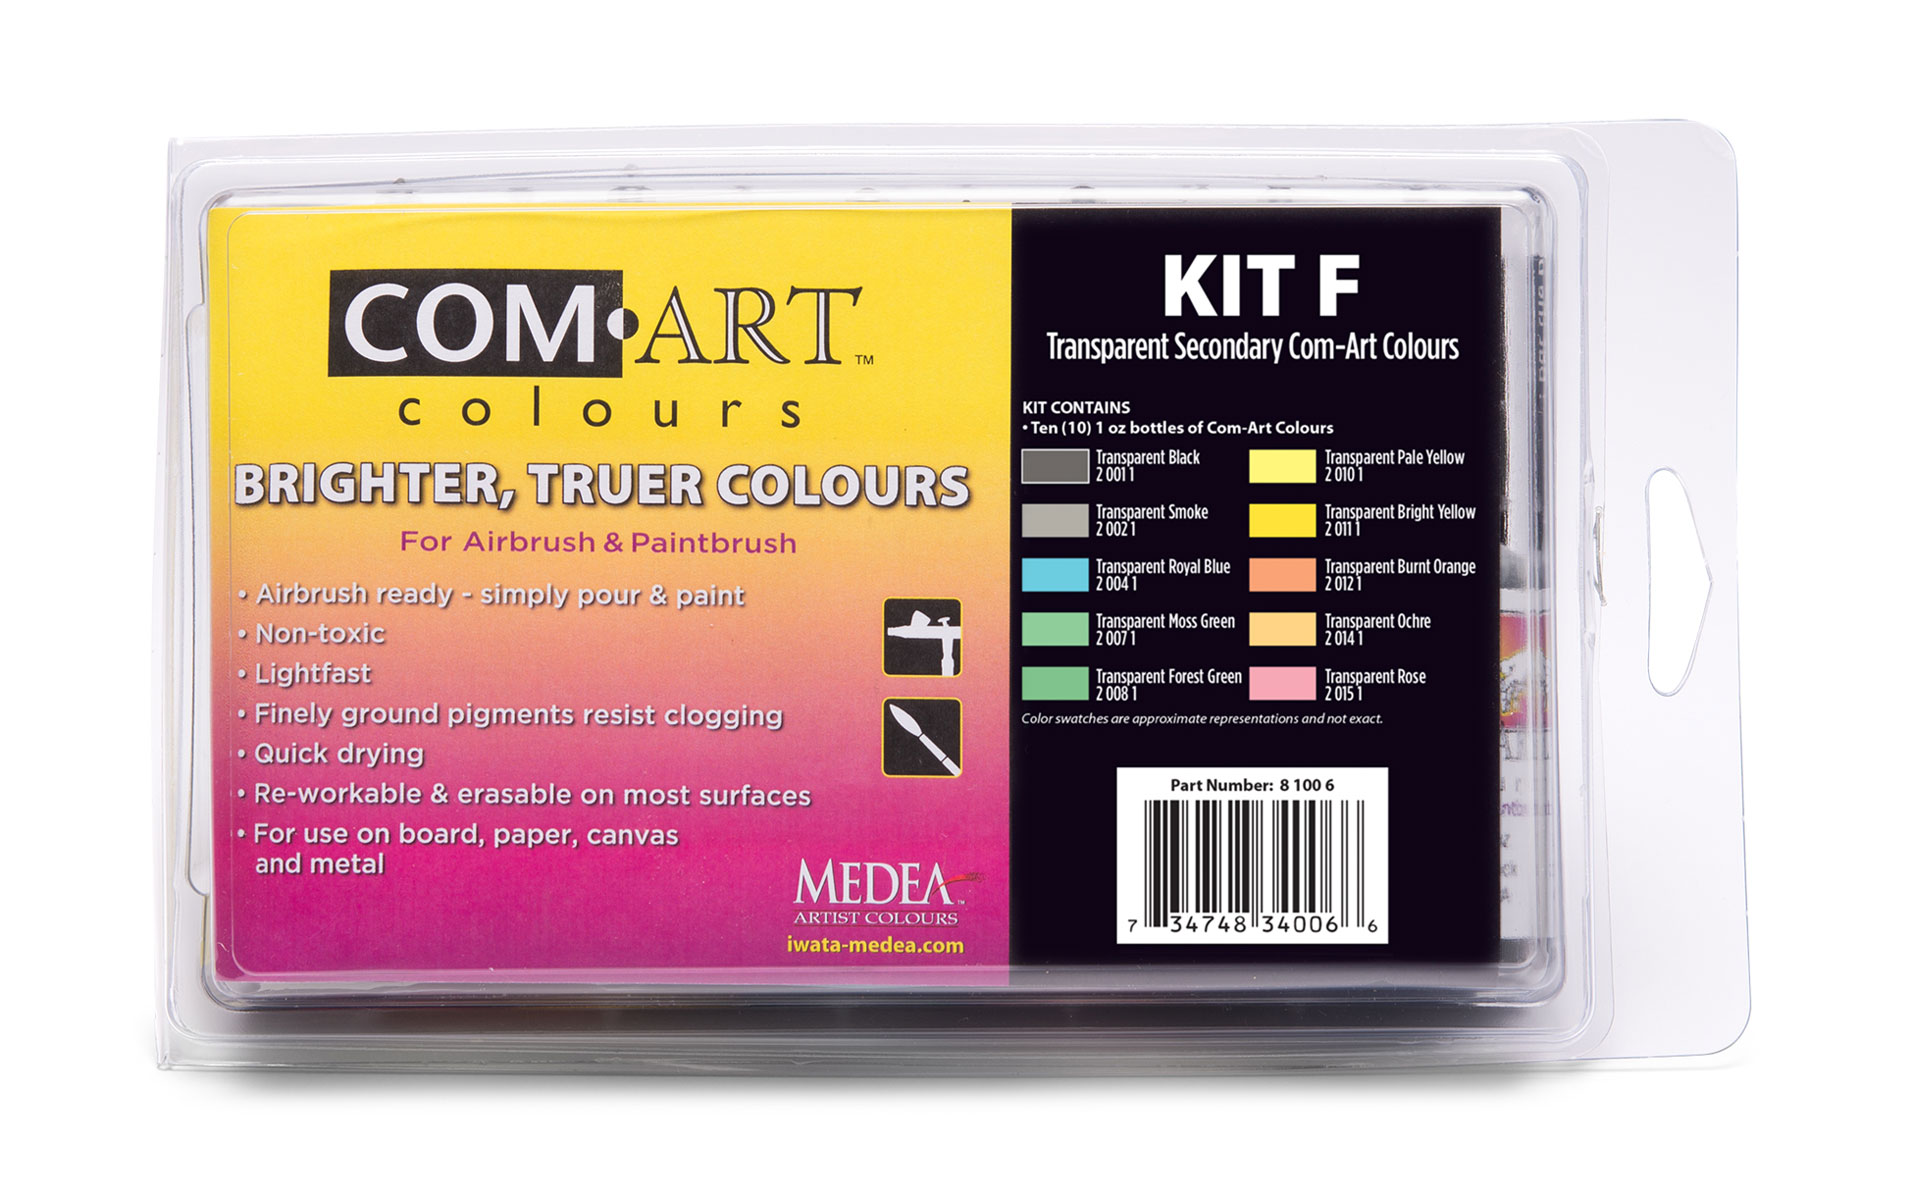 Medea Comart Transparent Secondary Kit F